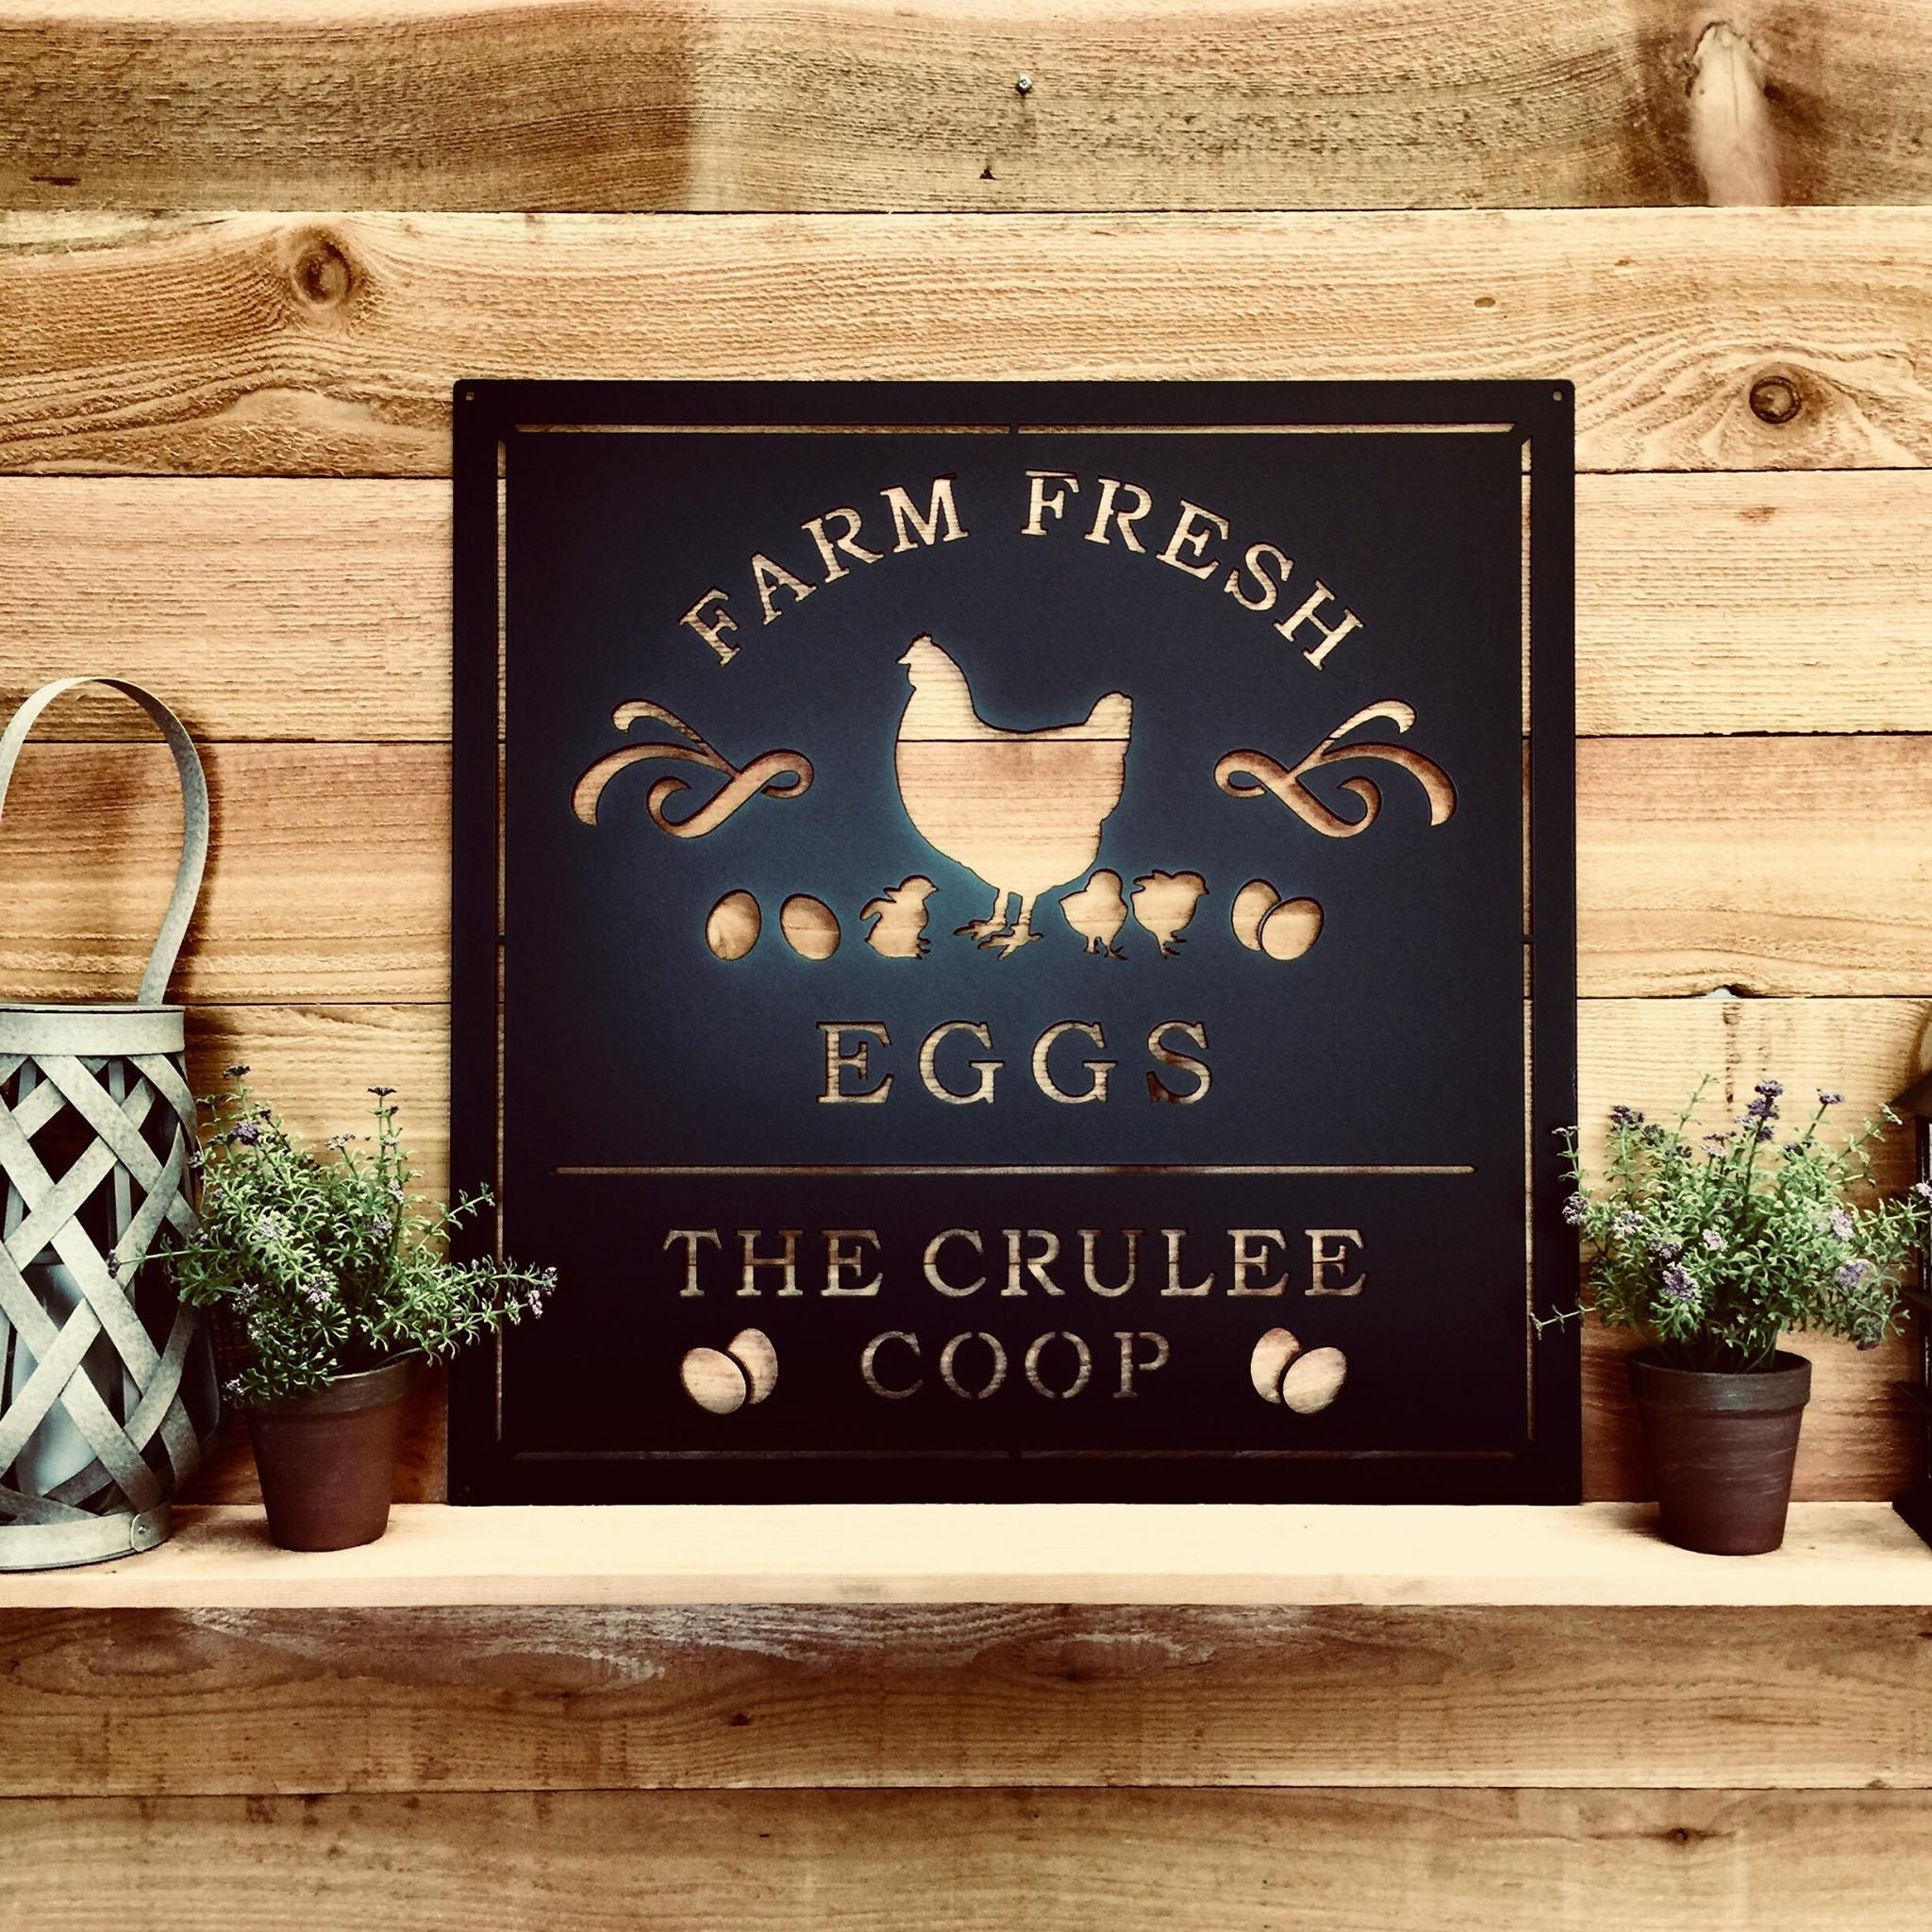 Personalized Chicken Coop Sign, Modern Farmhouse Kitchen Farm Fresh Eggs  Sign, Personalized Metal Farmhouse Sign, Rustic Country Farm Sign